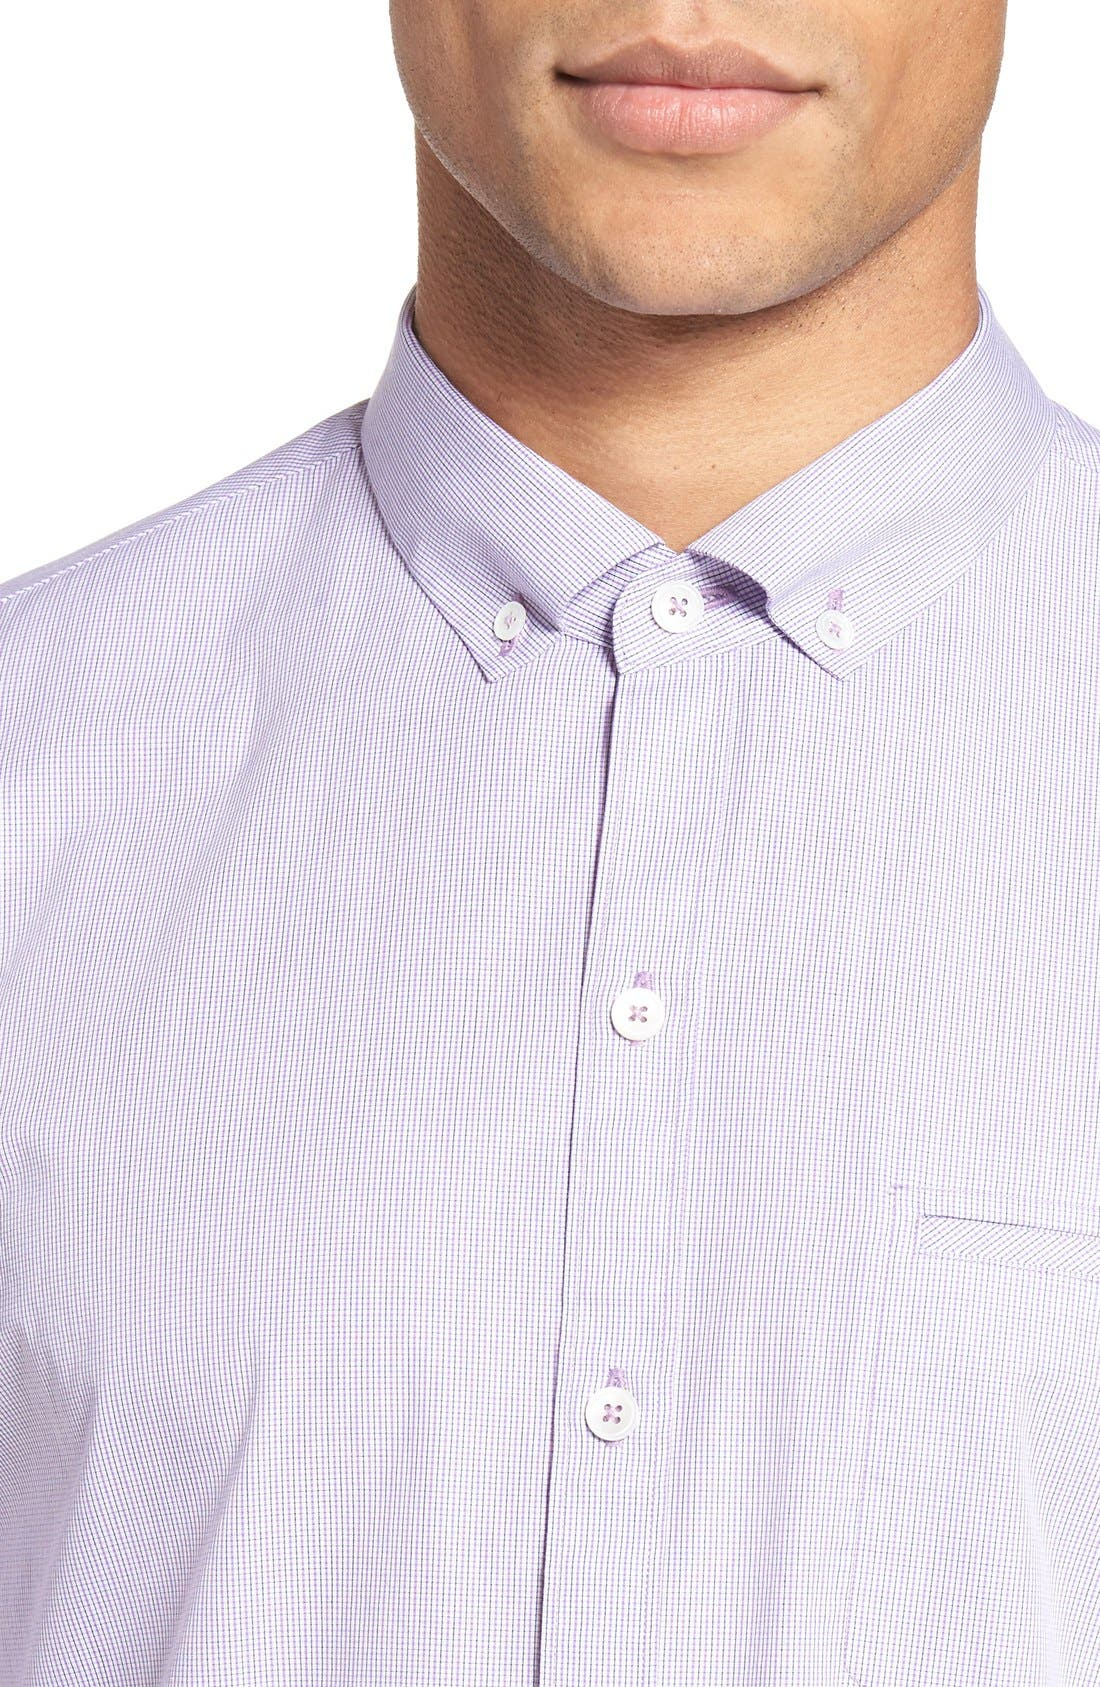 Alternate Image 4  - Zachary Prell Friswold Slim Fit Plaid Sport Shirt